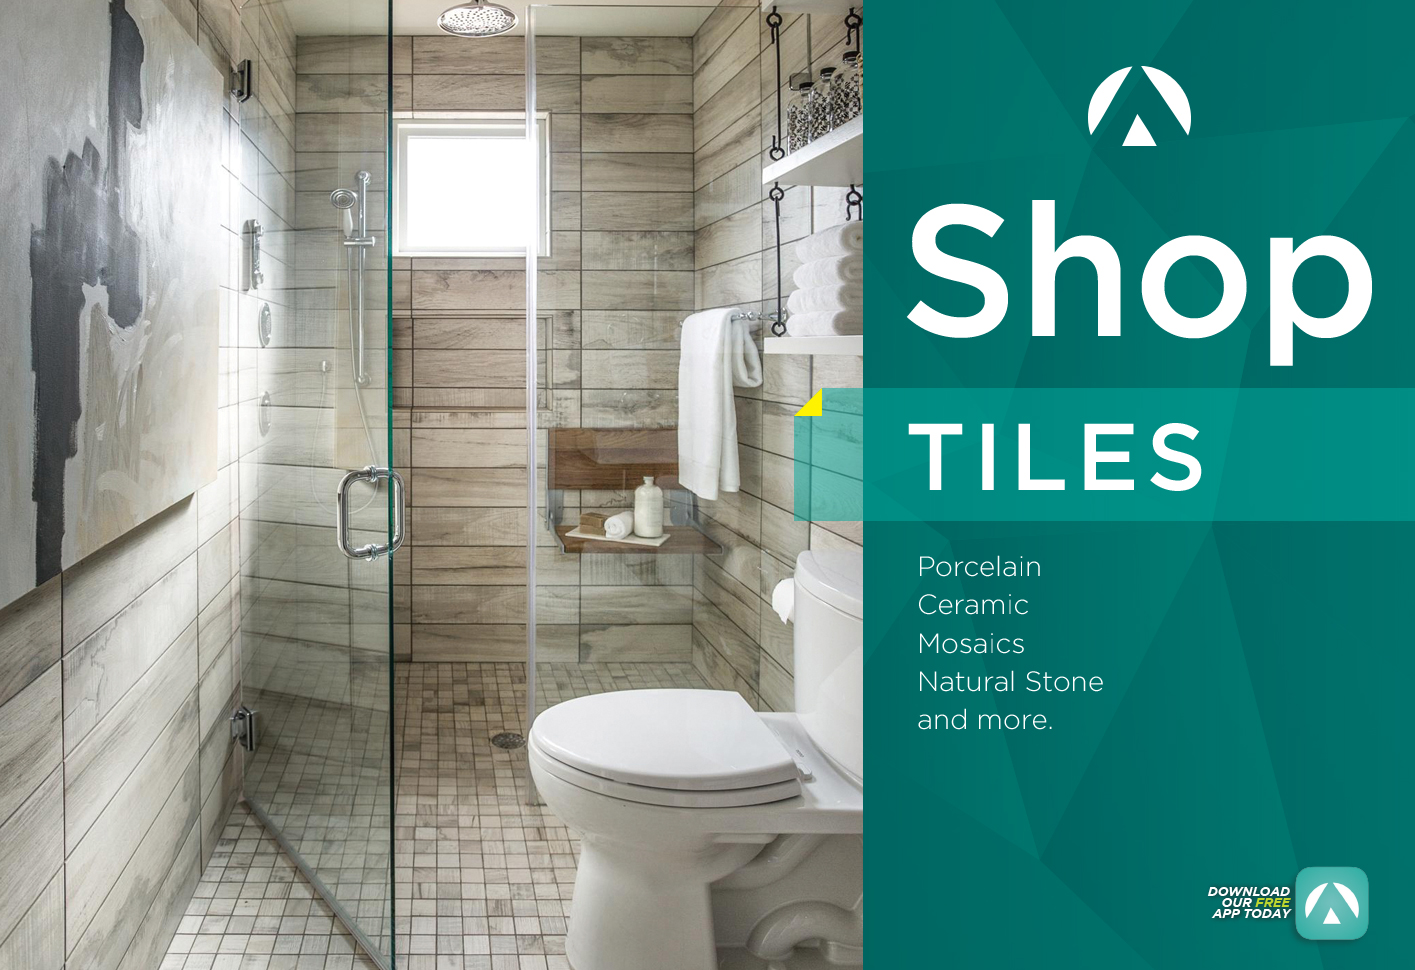 Stunning Ative Tiles For Bathroom Pictures Inspiration - The Best ...